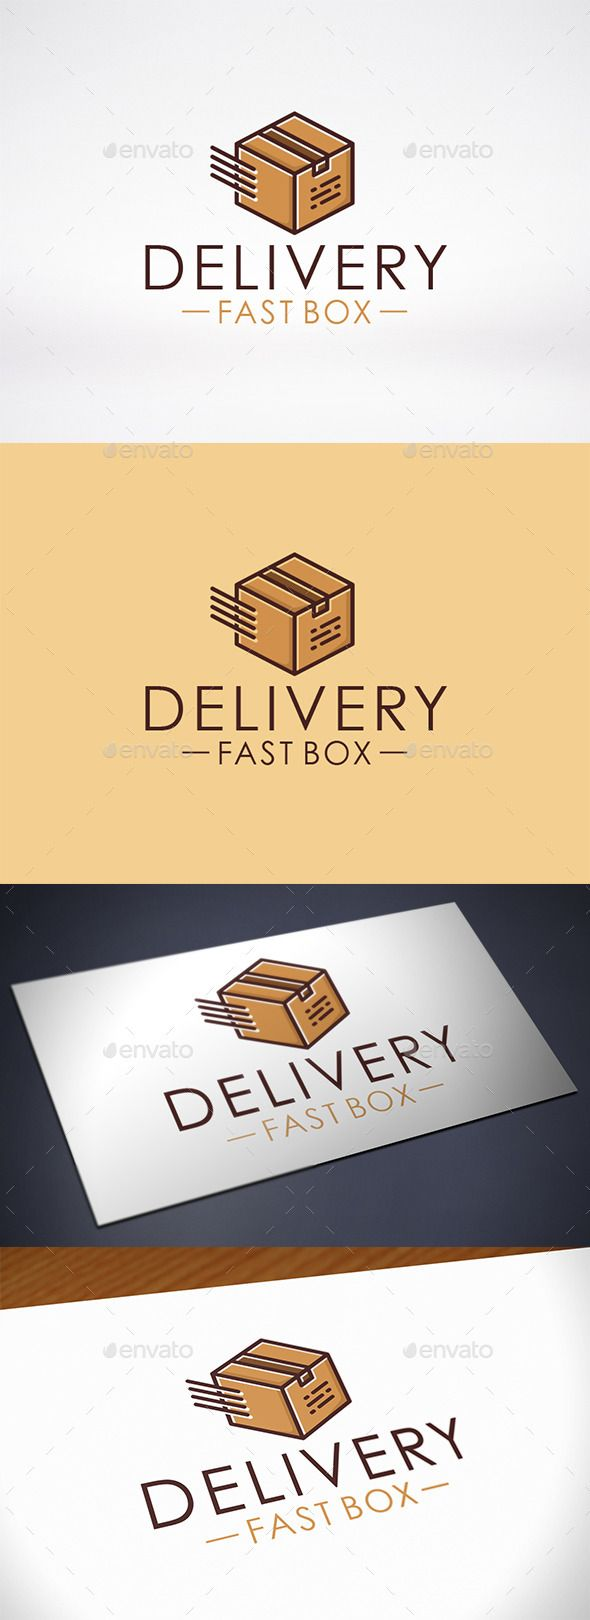 Fast Box Delivery Logo Template — Vector EPS #urgent service #trucker • Avai...